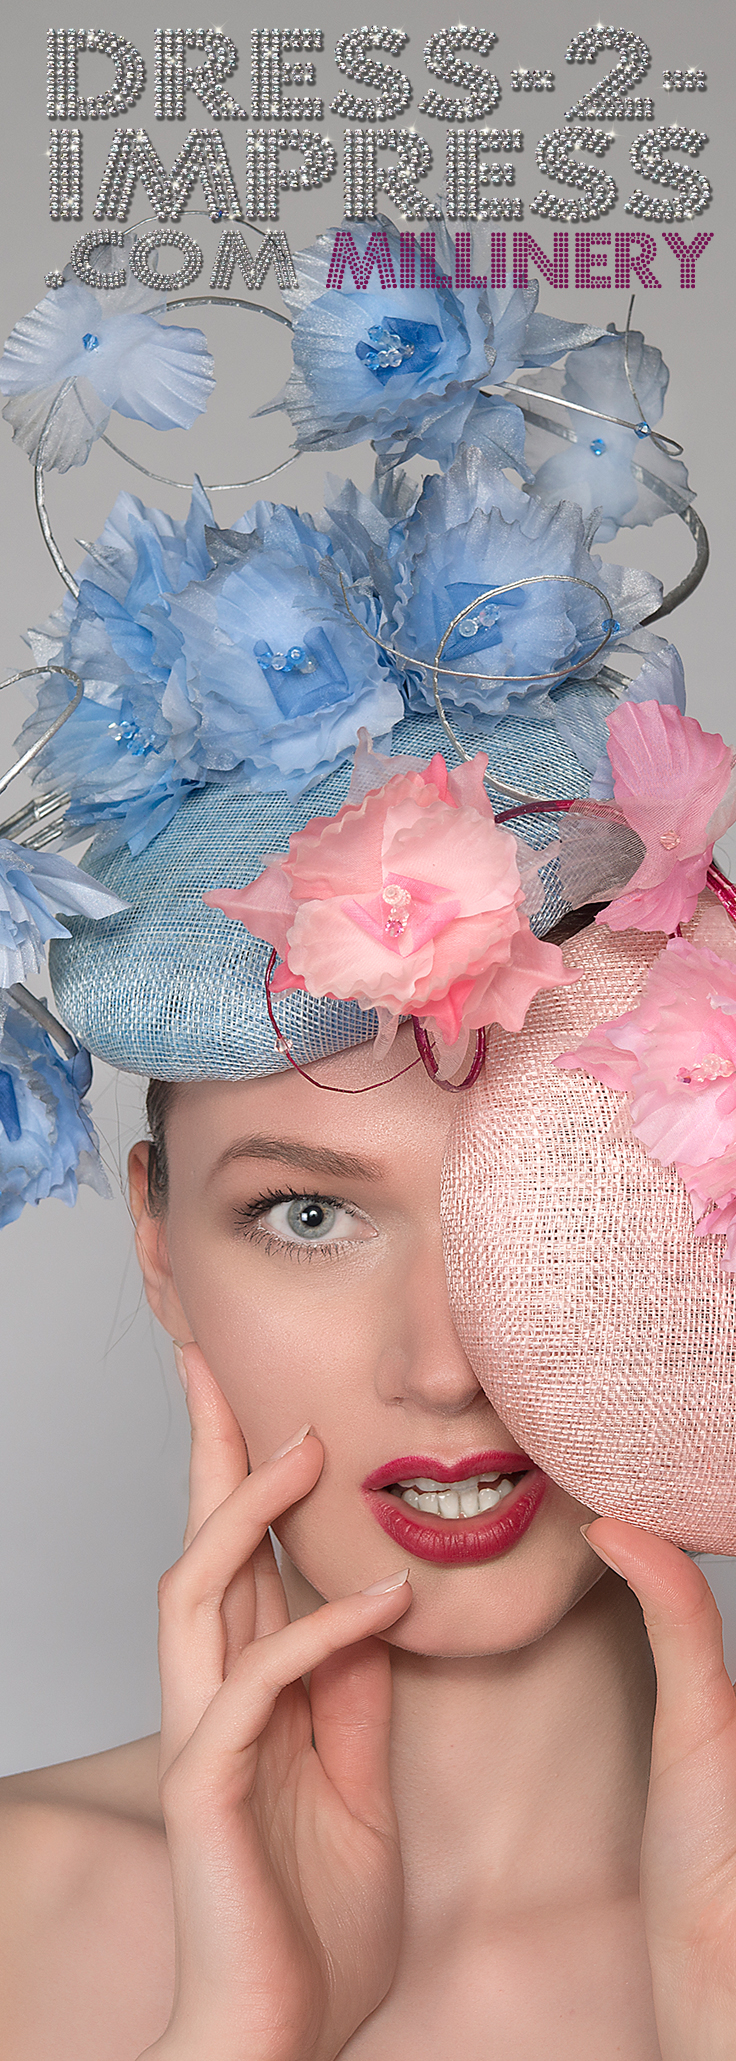 Handmade Designer Hats and Headpieces for Royal Ascot, Kentucky Derby, Dubai World Cup, Melbourne Cup and other Races, Mother of the Bride, or Weddings. Couture Millinery. #bighats #designerwear #fashion #fashionista #fashionaddict #fascinators #hats #royalascot #fashiononthefield #kentuckyderby